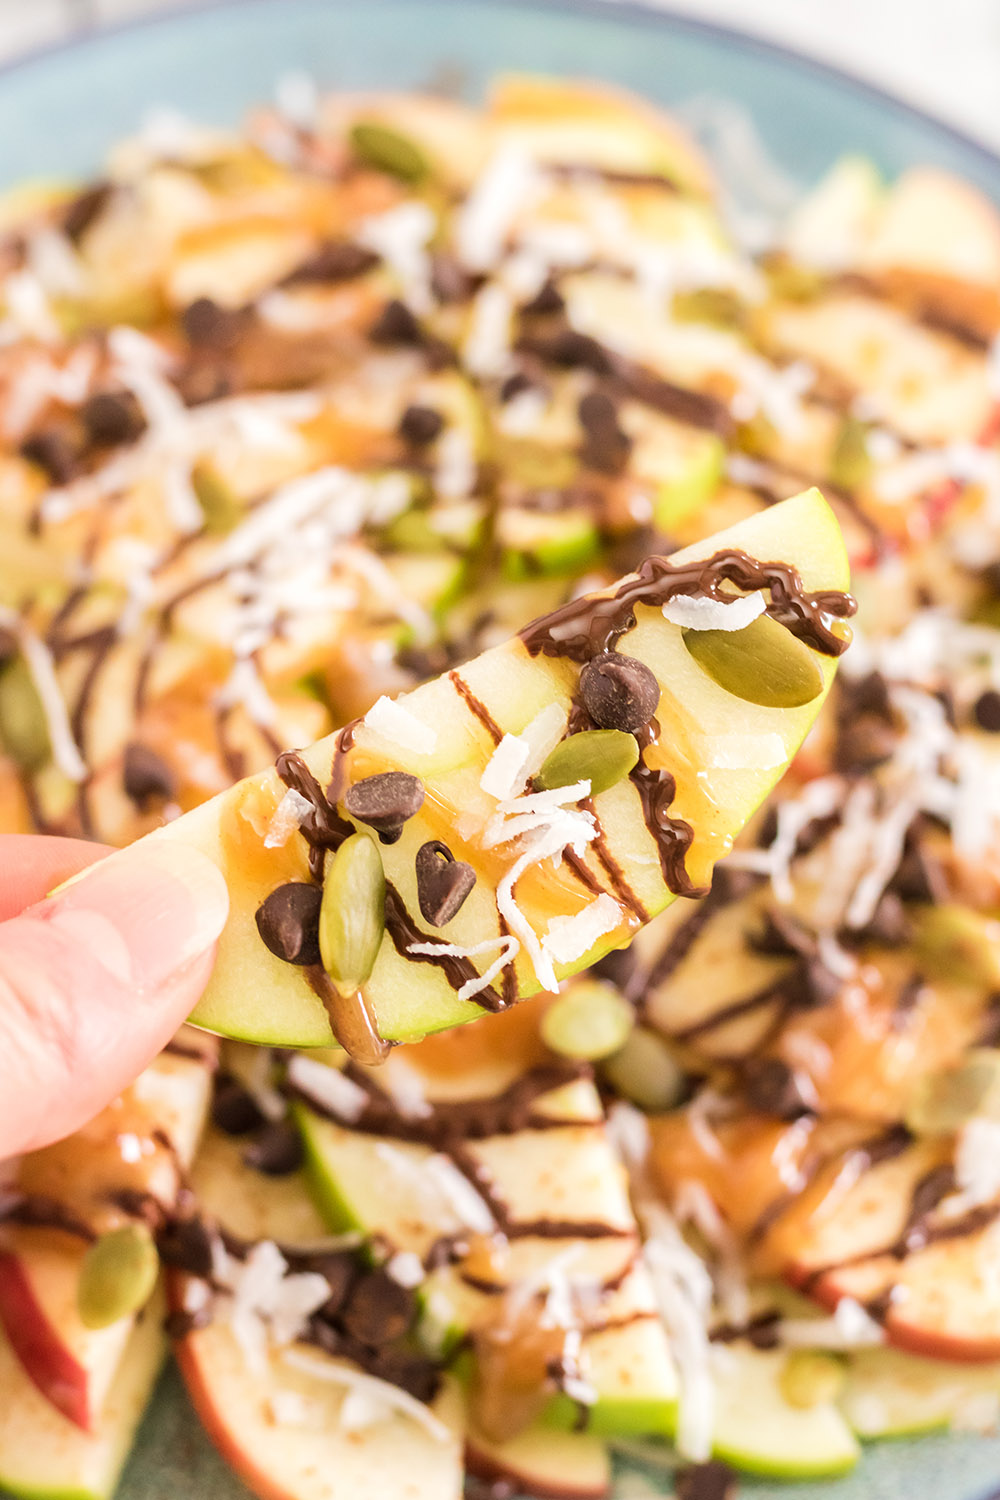 Apples topped with nuts, caramel, and chocolate for apple nachos.